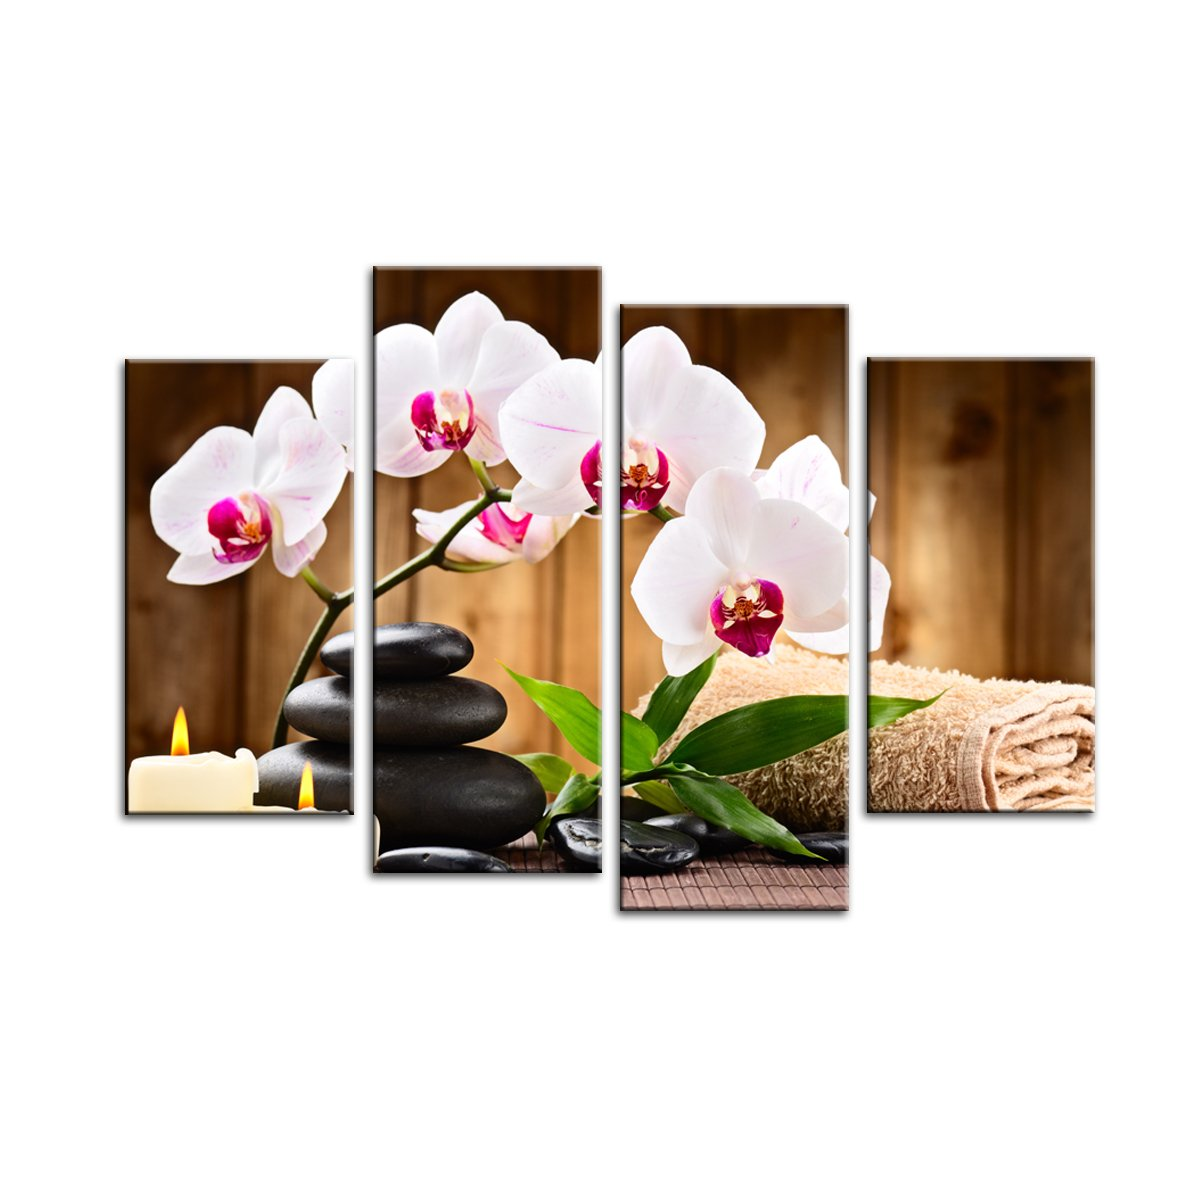 BIL-YOPIN Abstract Painting Canvas Prints Wall Art - 4 Panel Framed Oil Paintings Reproduction for Home and Office Decorations Felite